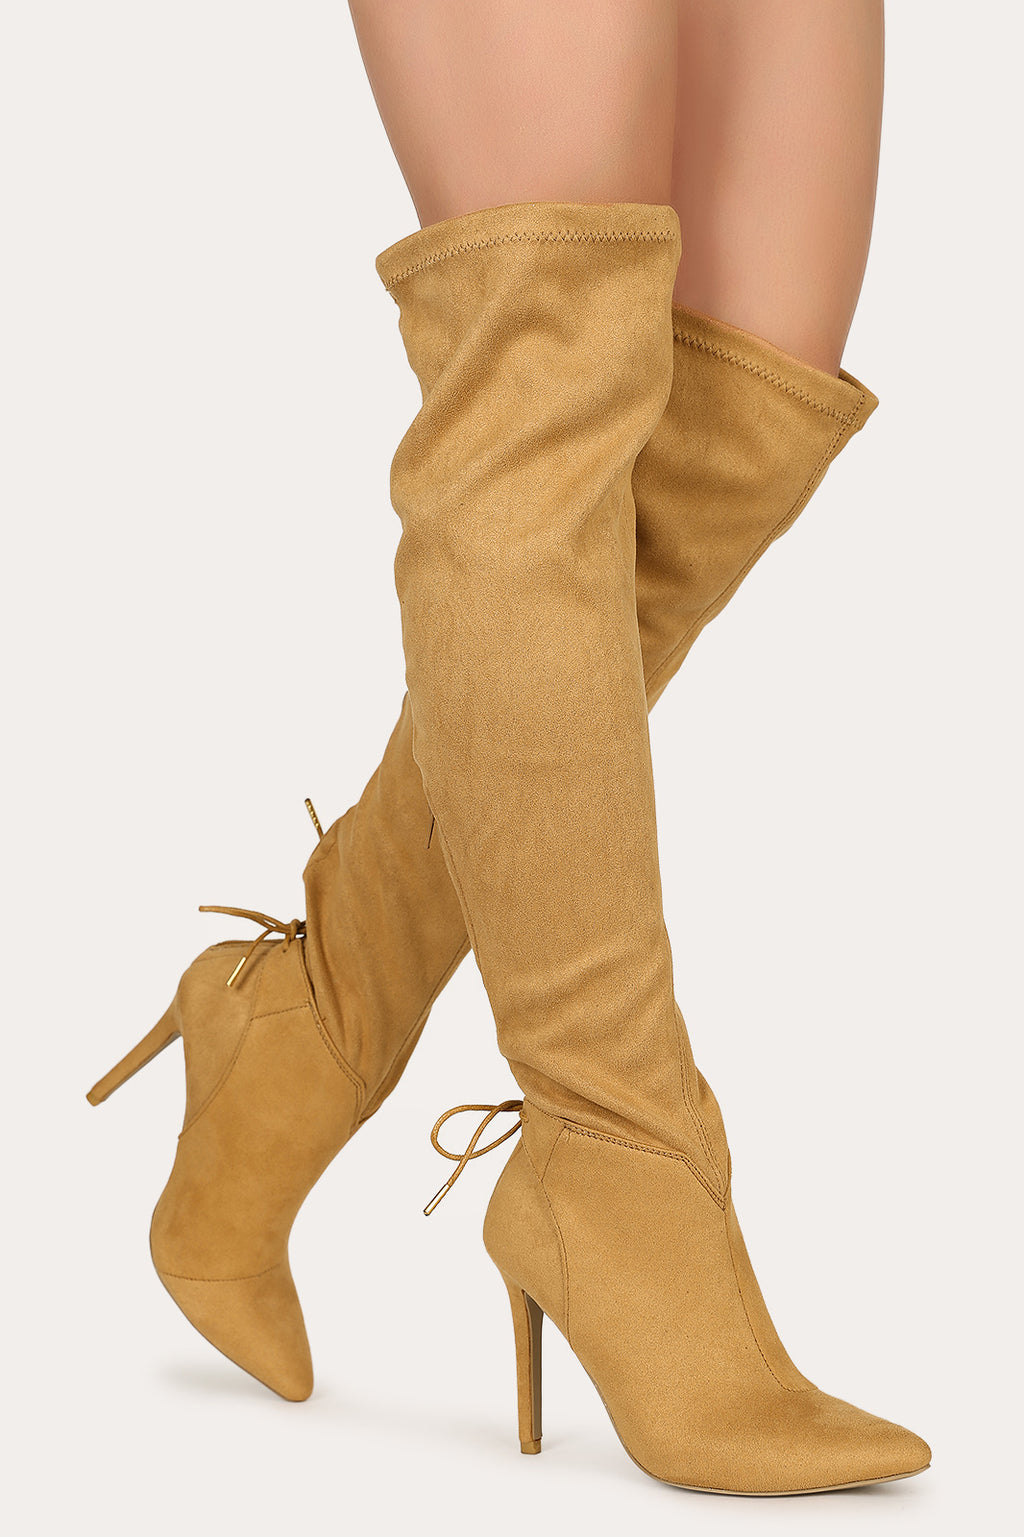 Hot Affair - Camel Stiletto Boots